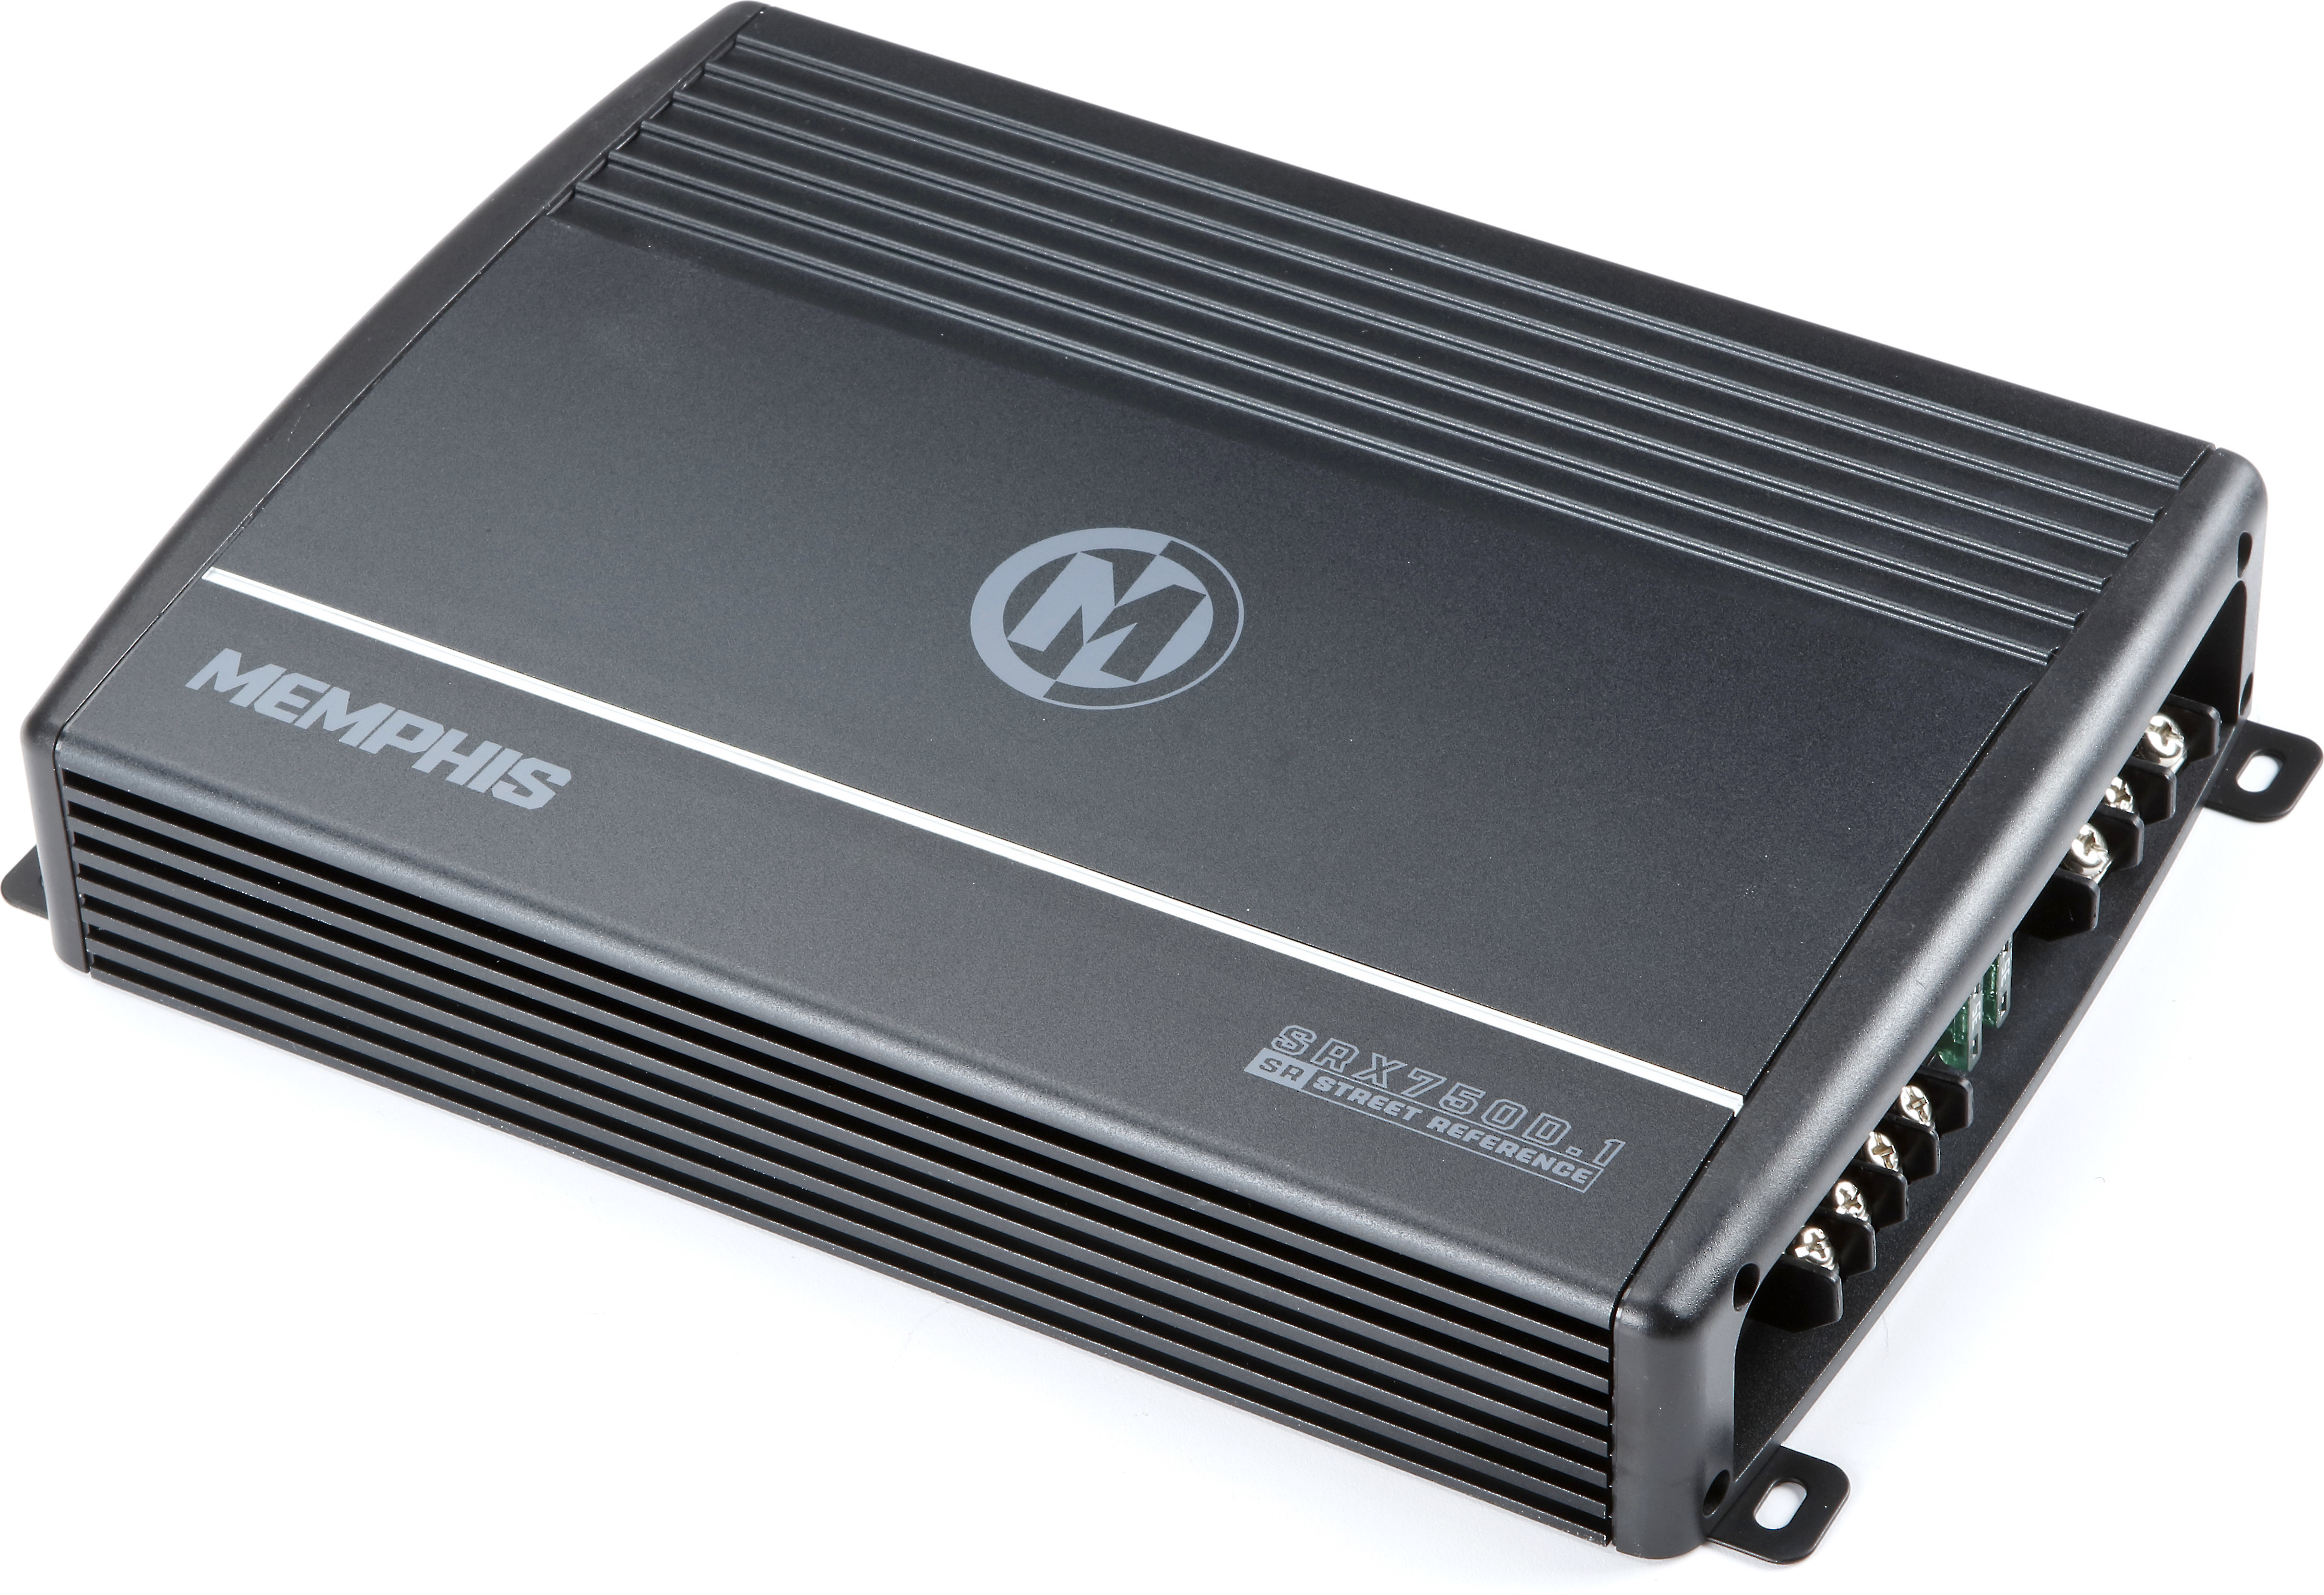 memphis audio 16 srx750d 1 street reference mono subwoofer amplifier 750 watts rms x 1 at 2 ohms at crutchfield crutchfield